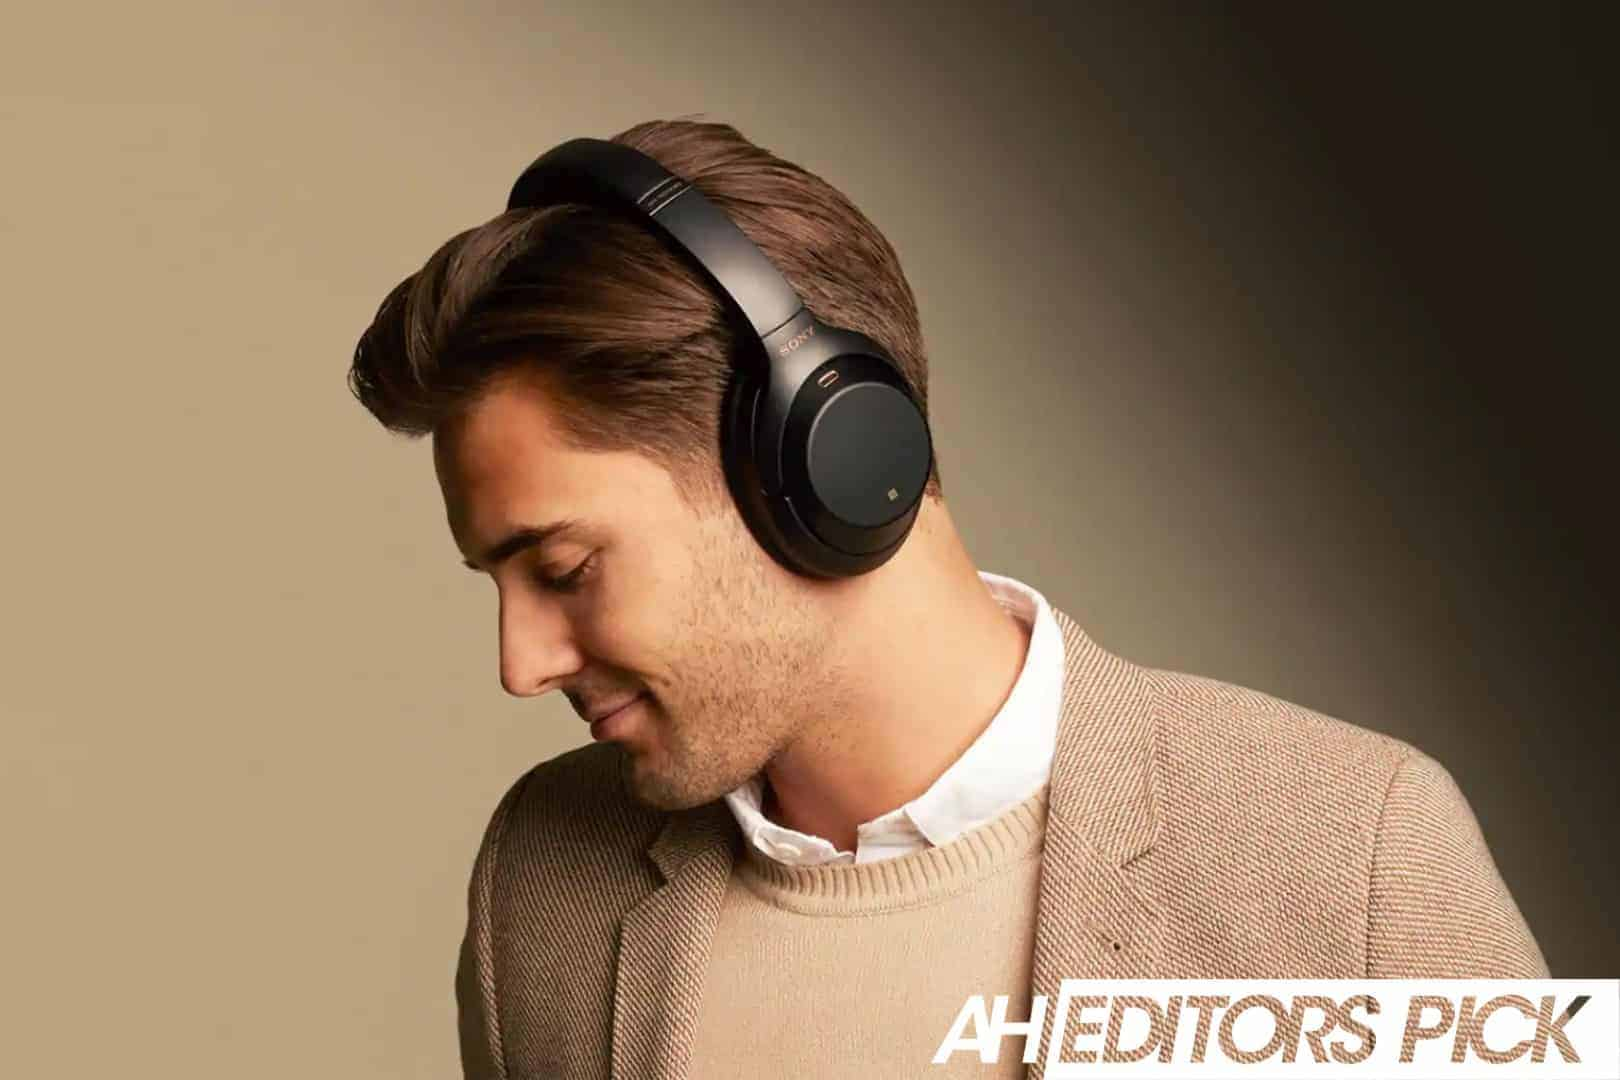 Sony WH 1000XM3 01 AH EP